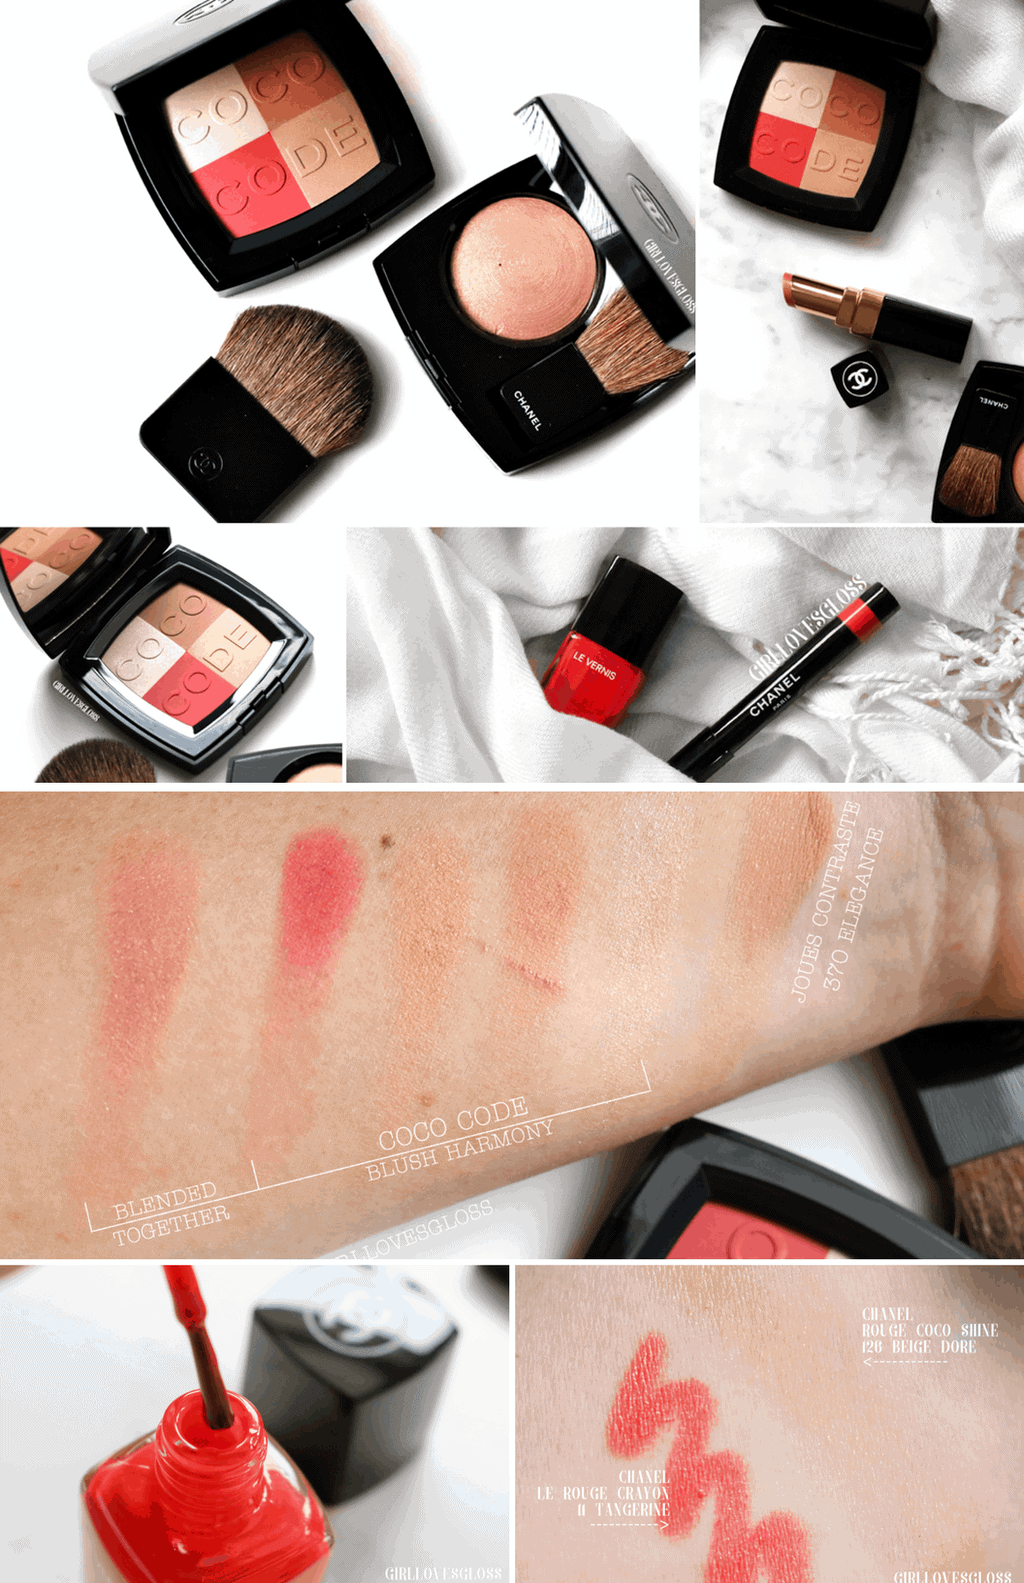 chanel coco codes collection 2017